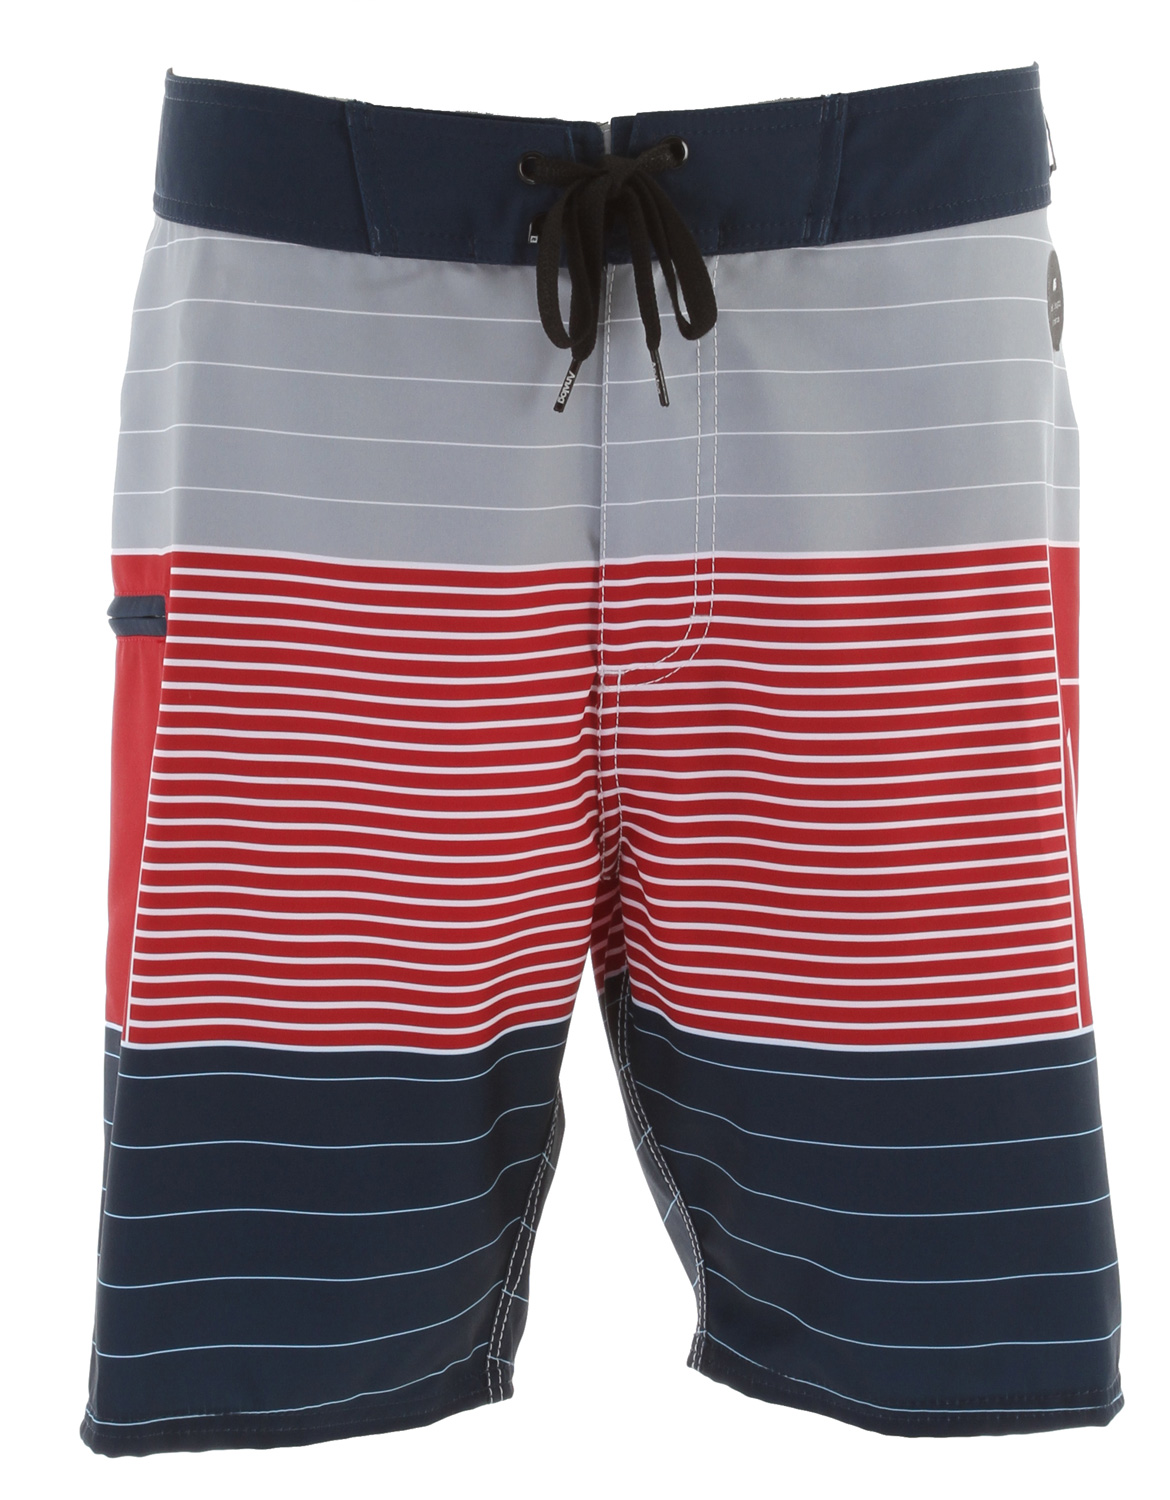 "Surf Key Features of the Analog Locked Up 20"" Boardshorts: 20"" zip fly board short with engineered horizontal logo stripe and contrast waistband and side pocket Anti-slip draw cord with anti-rash lycra at front fly and rise Signature selvedge denim belt loop and branding detail 100% Polyster 2 way stretch. - $58.00"